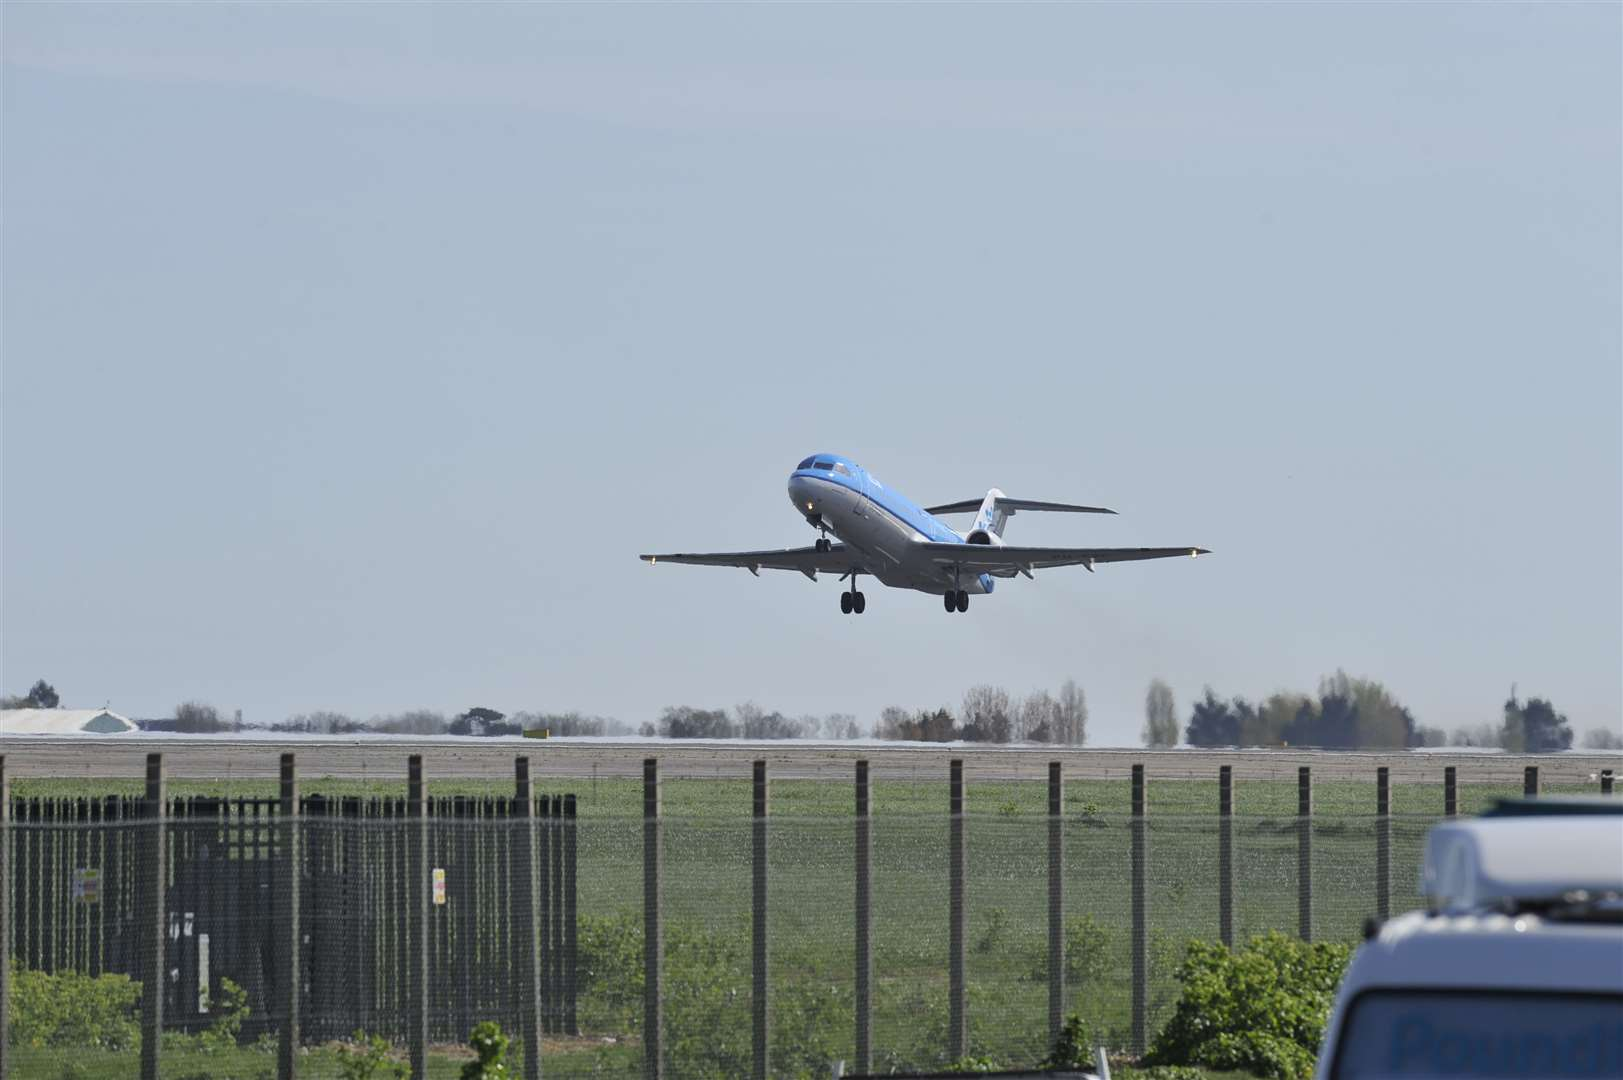 The last flight took off from Manston in April 2014